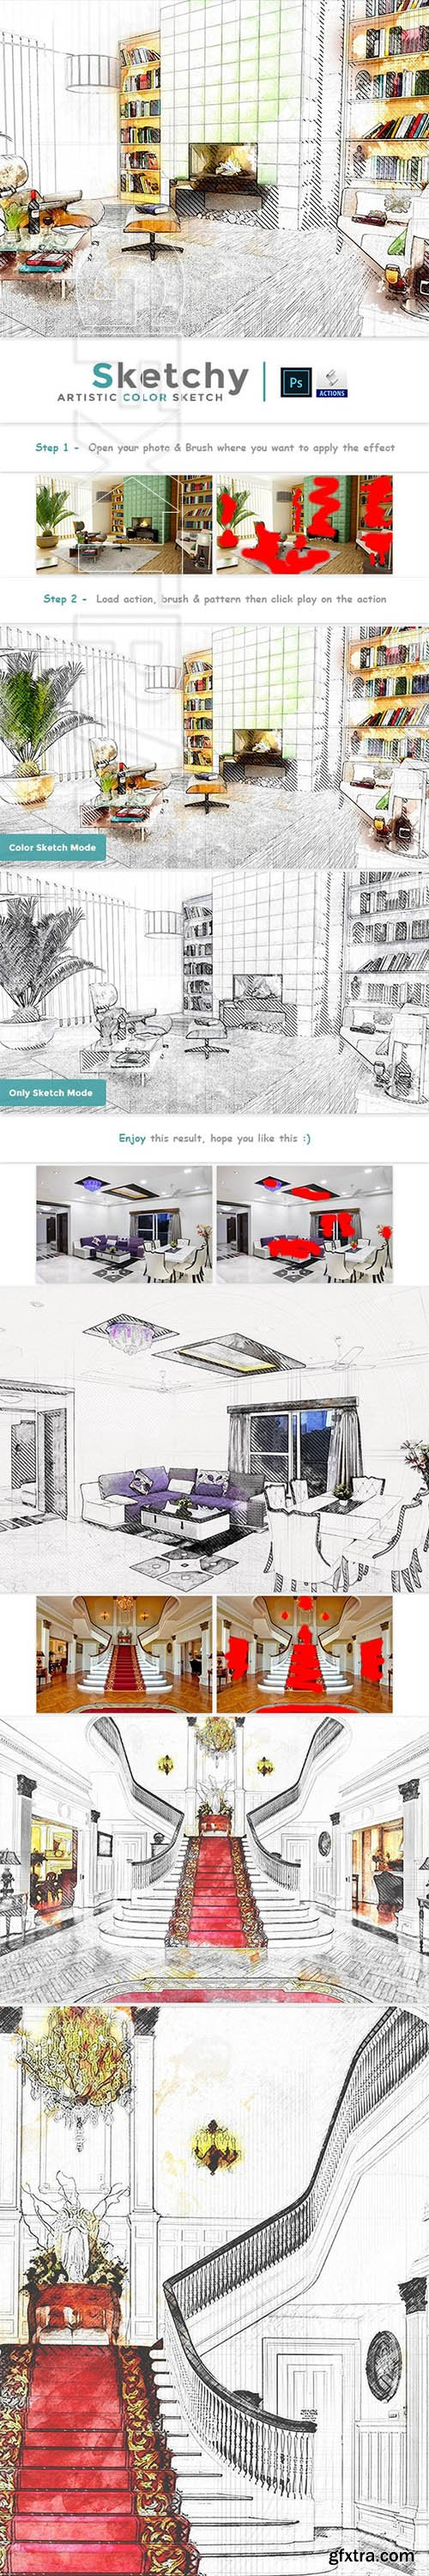 GraphicRiver - Sketchy - Artistic Color Sketch PS Action 24185668